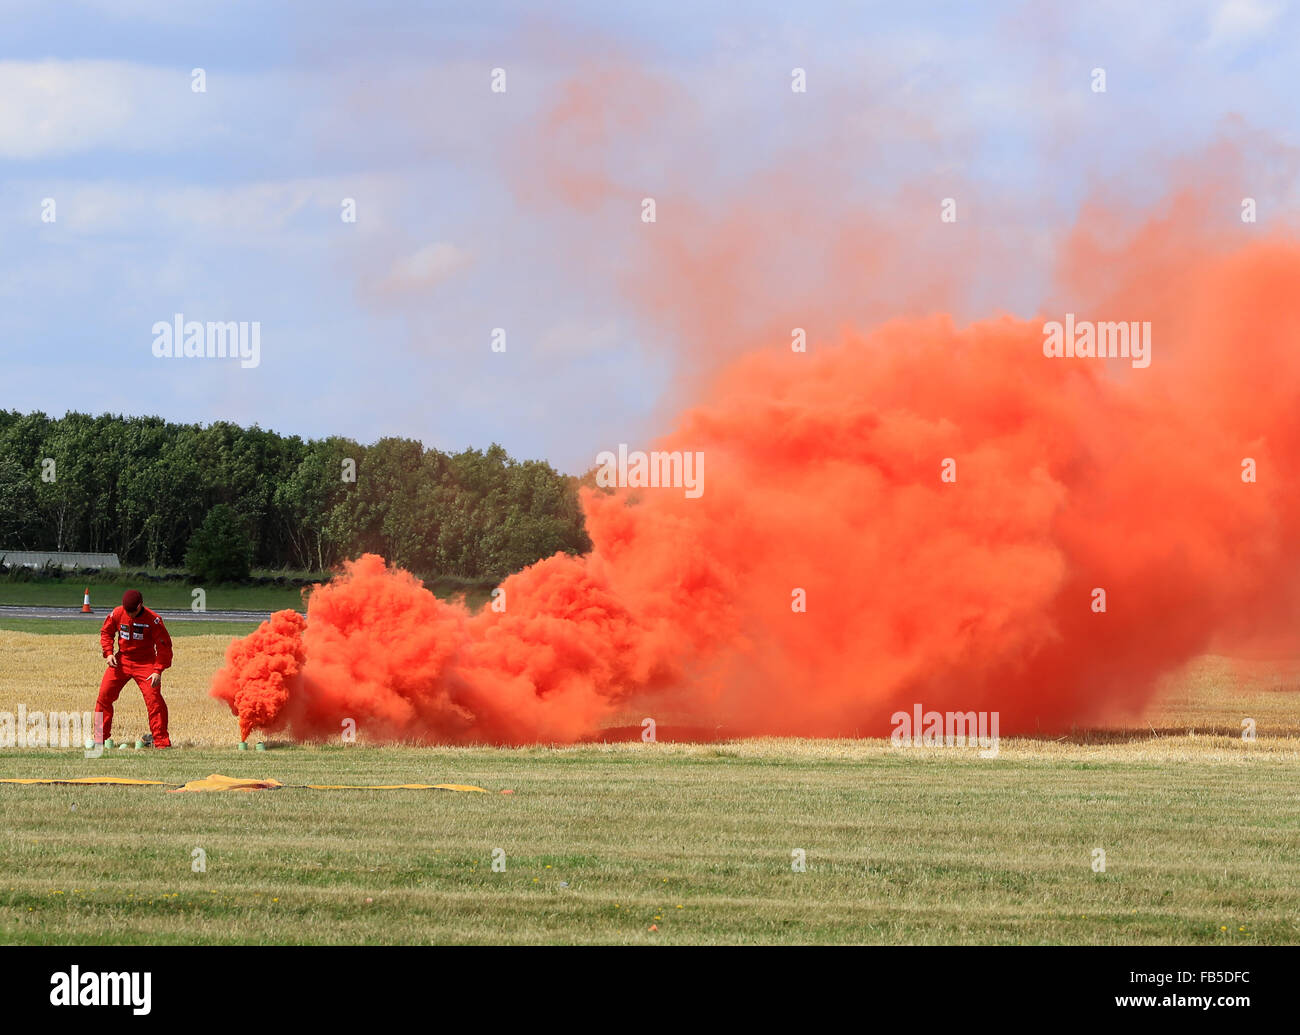 Preparations on the ground for the RAF Red Devils parachute jump at an air display - Stock Image